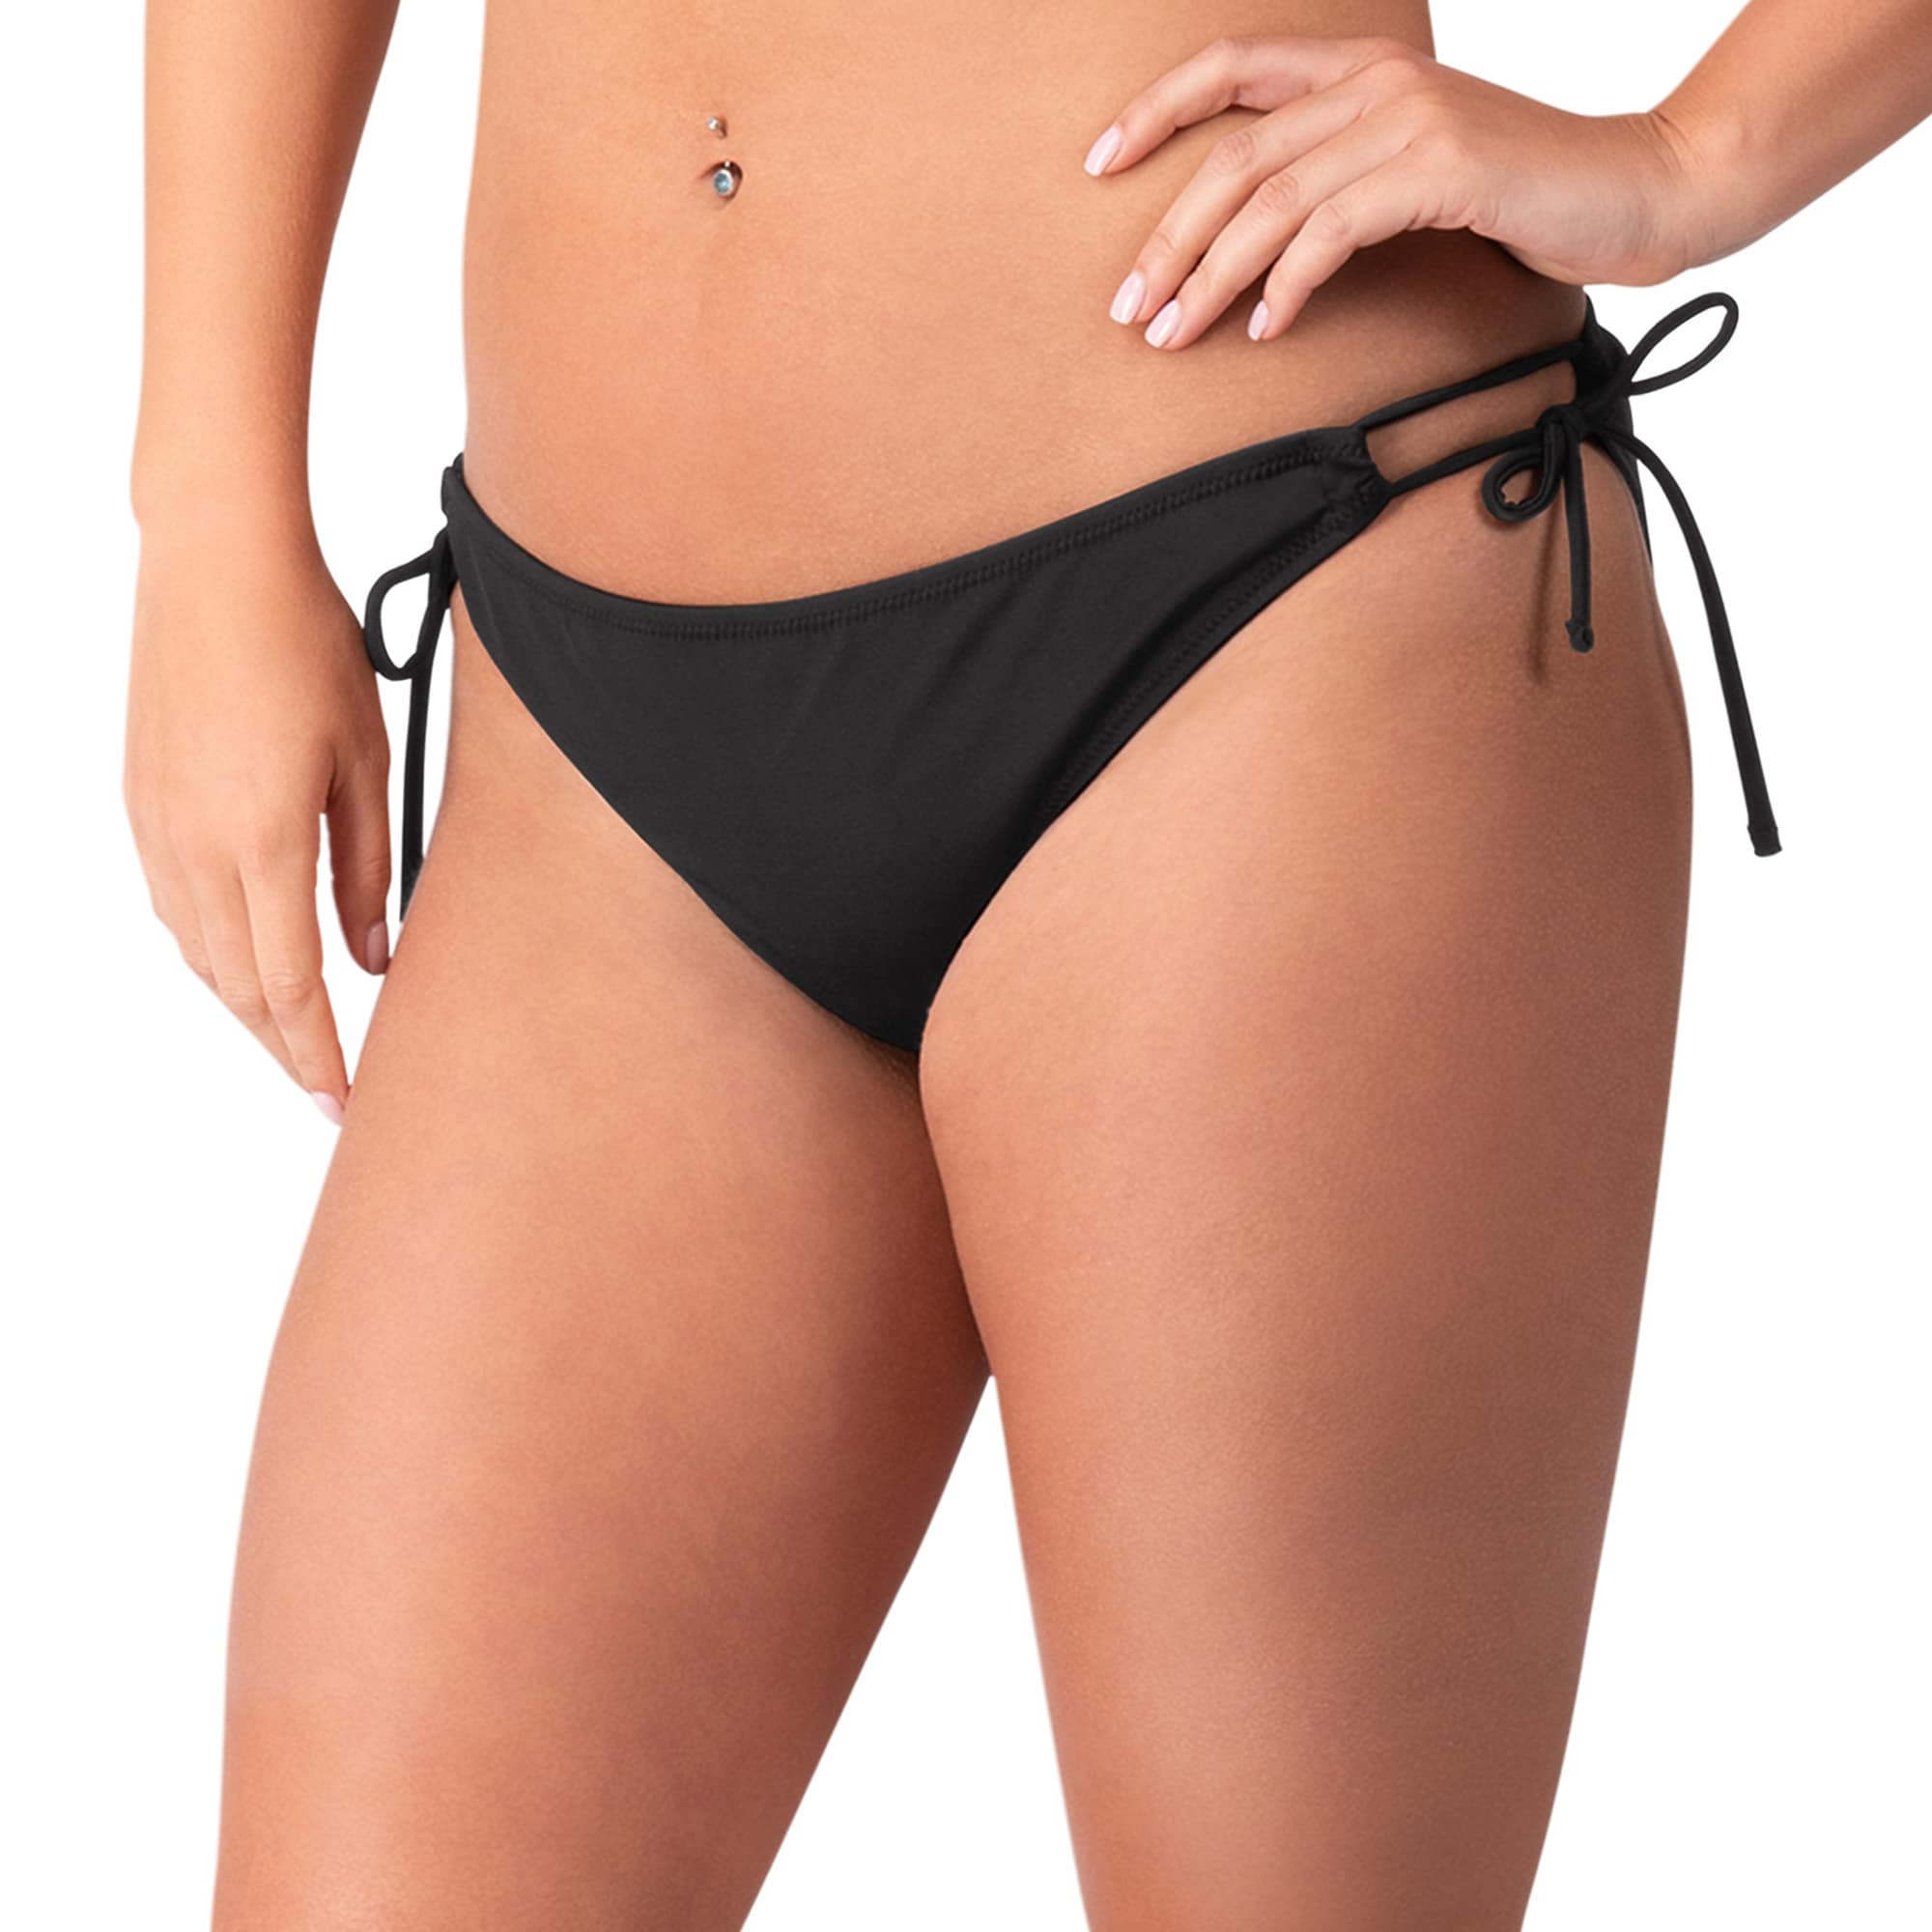 Miami Dolphins G-III 4Her by Carl Banks Women's Without Limits Bikini Bottom - Black